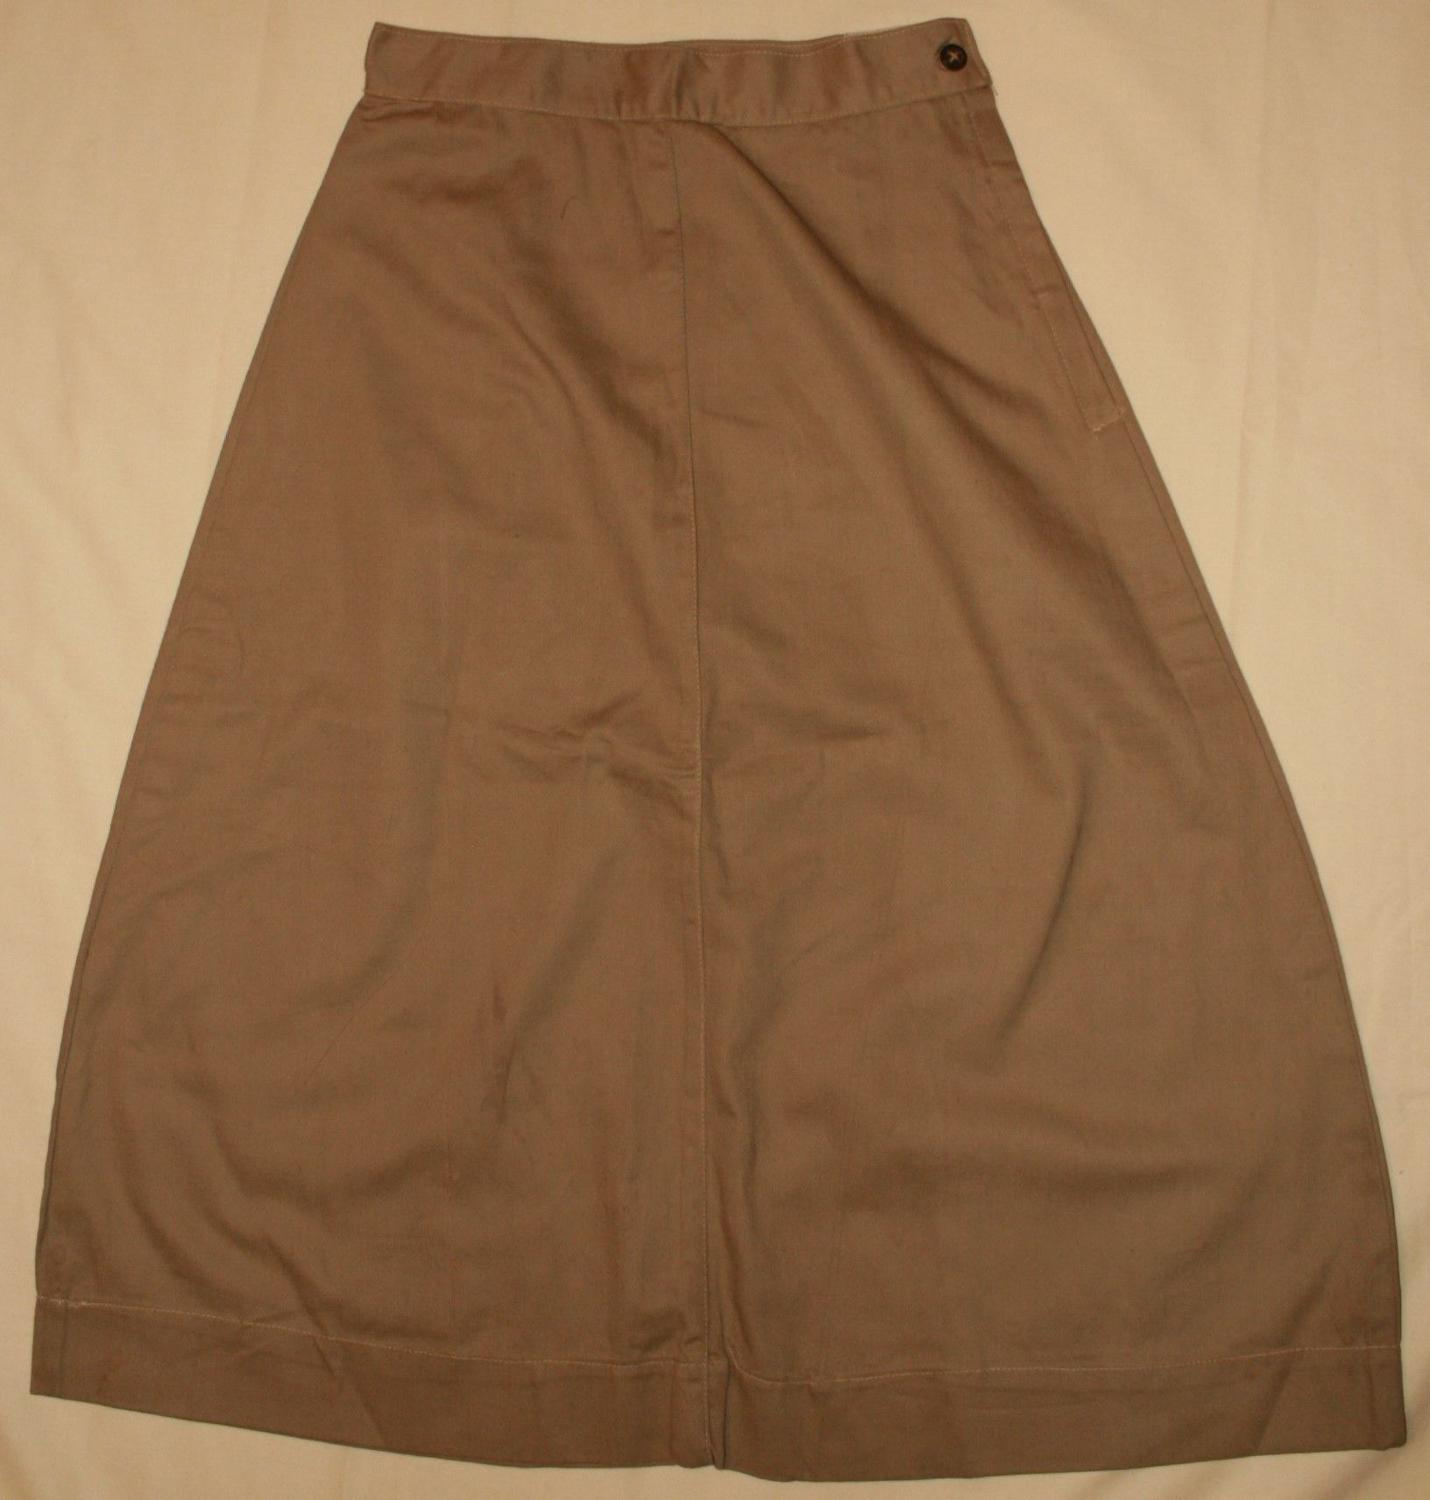 A BRITISH 1945 DATED KD SKIRT SIZE 9